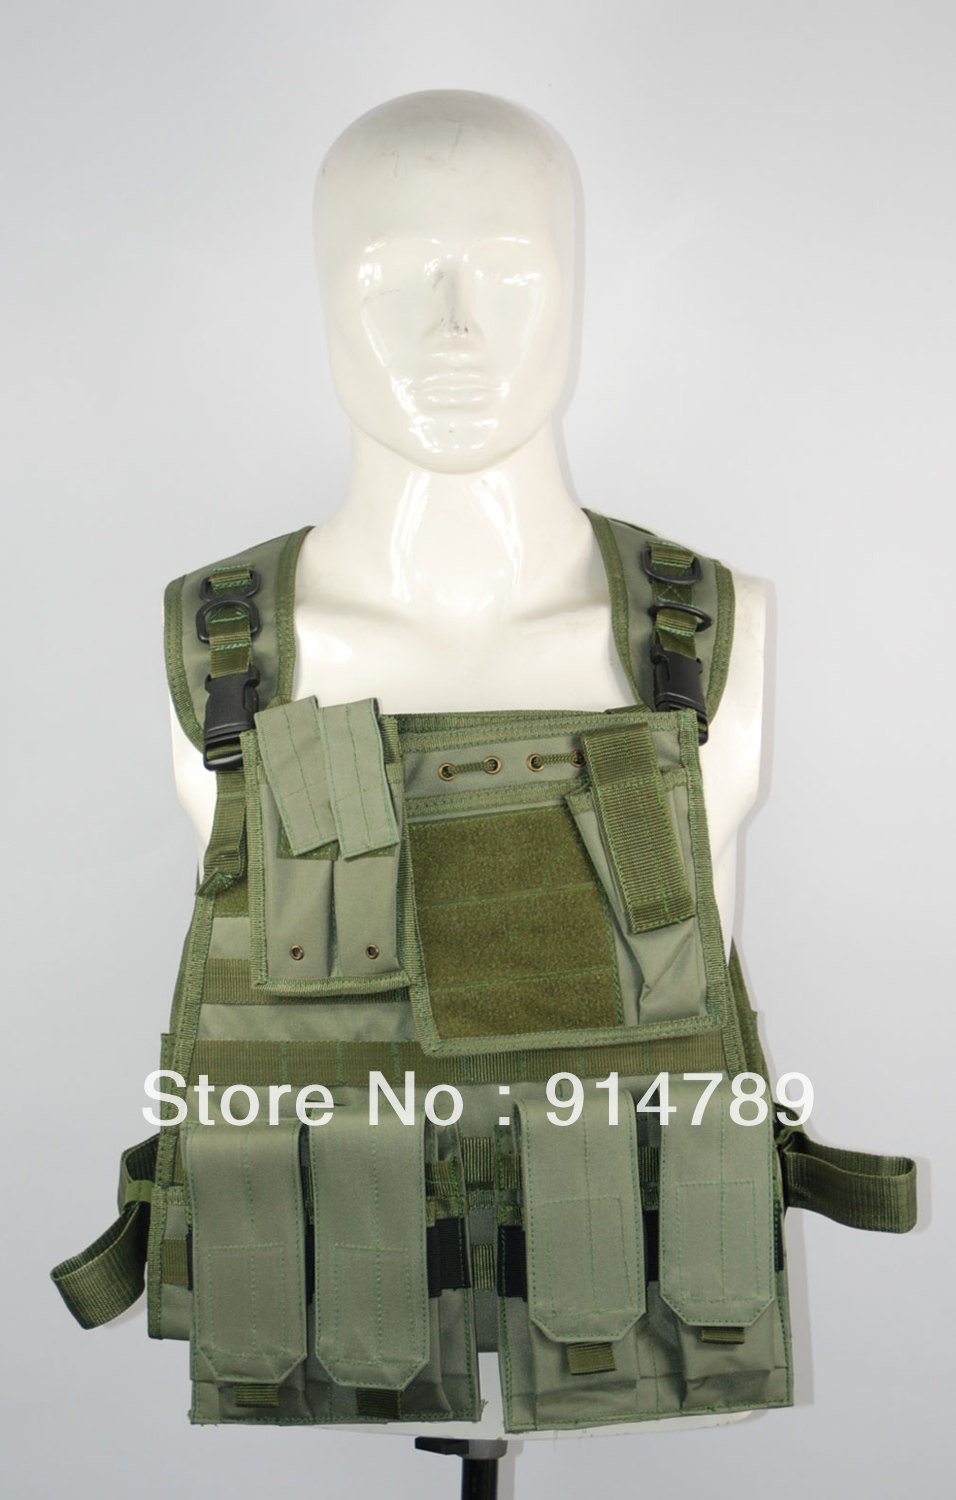 FIELD GEAR COMBAT LOAD TACTICAL GREEN VEST-32683(China (Mainland))